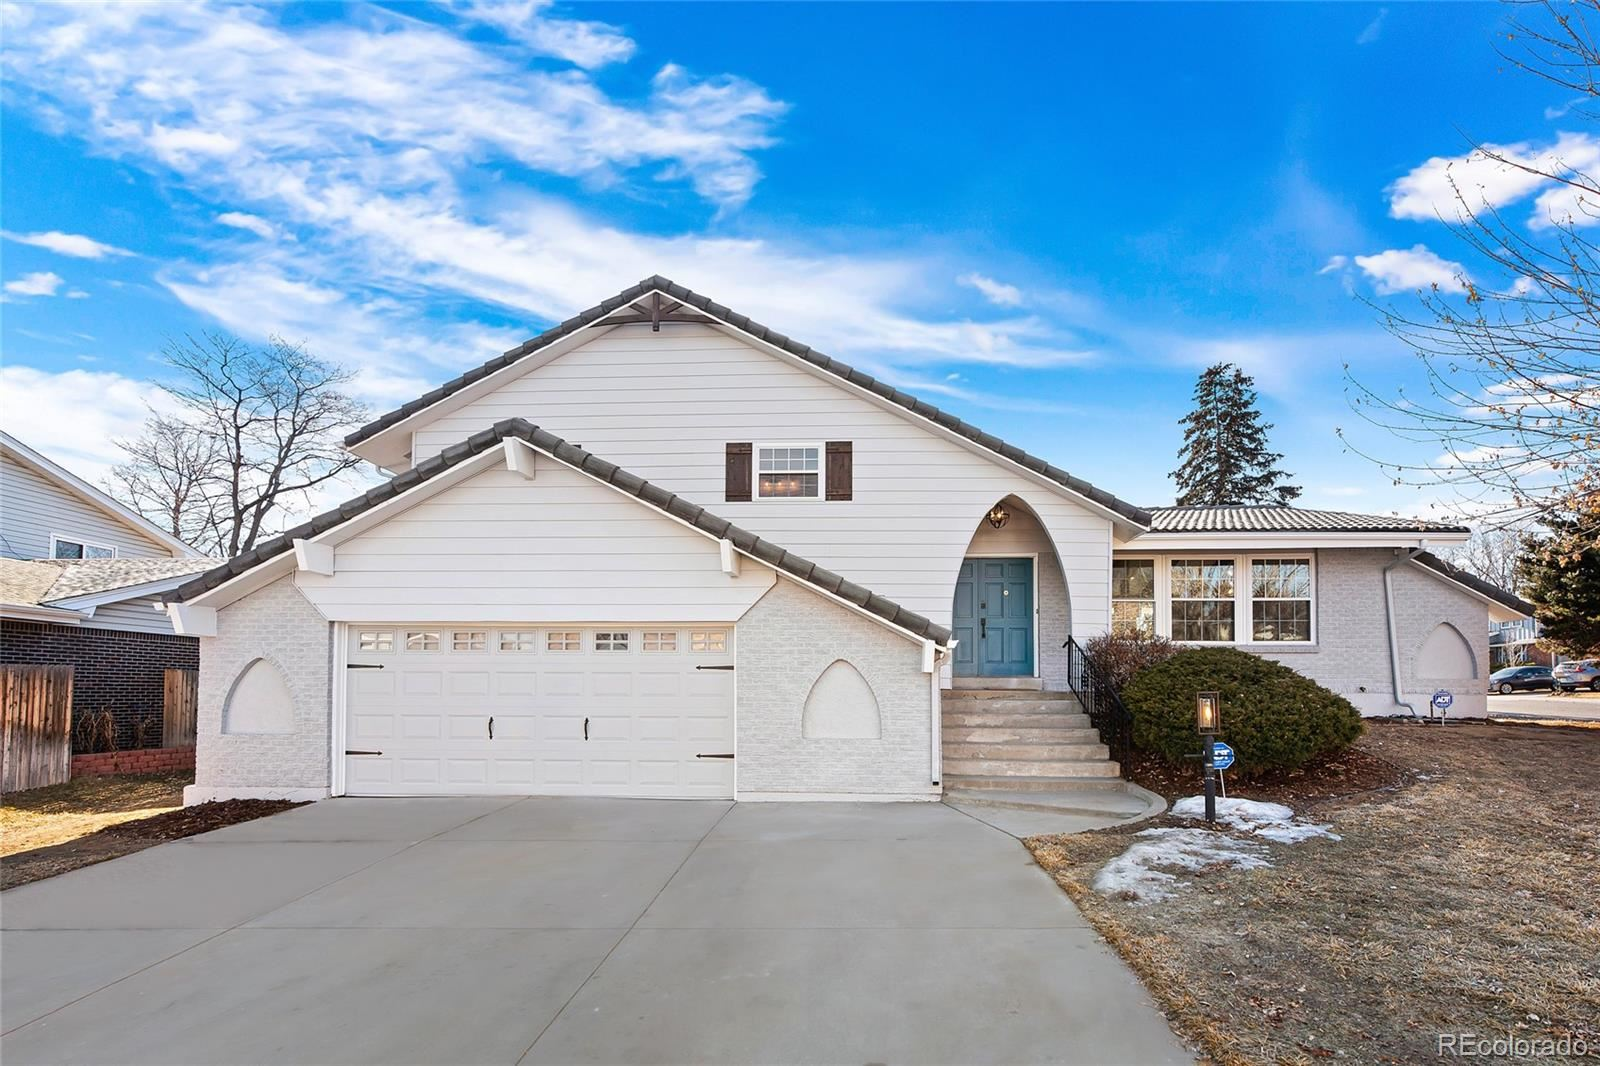 7602 E Nassau Avenue, Denver, CO 80237 - #: 3235568